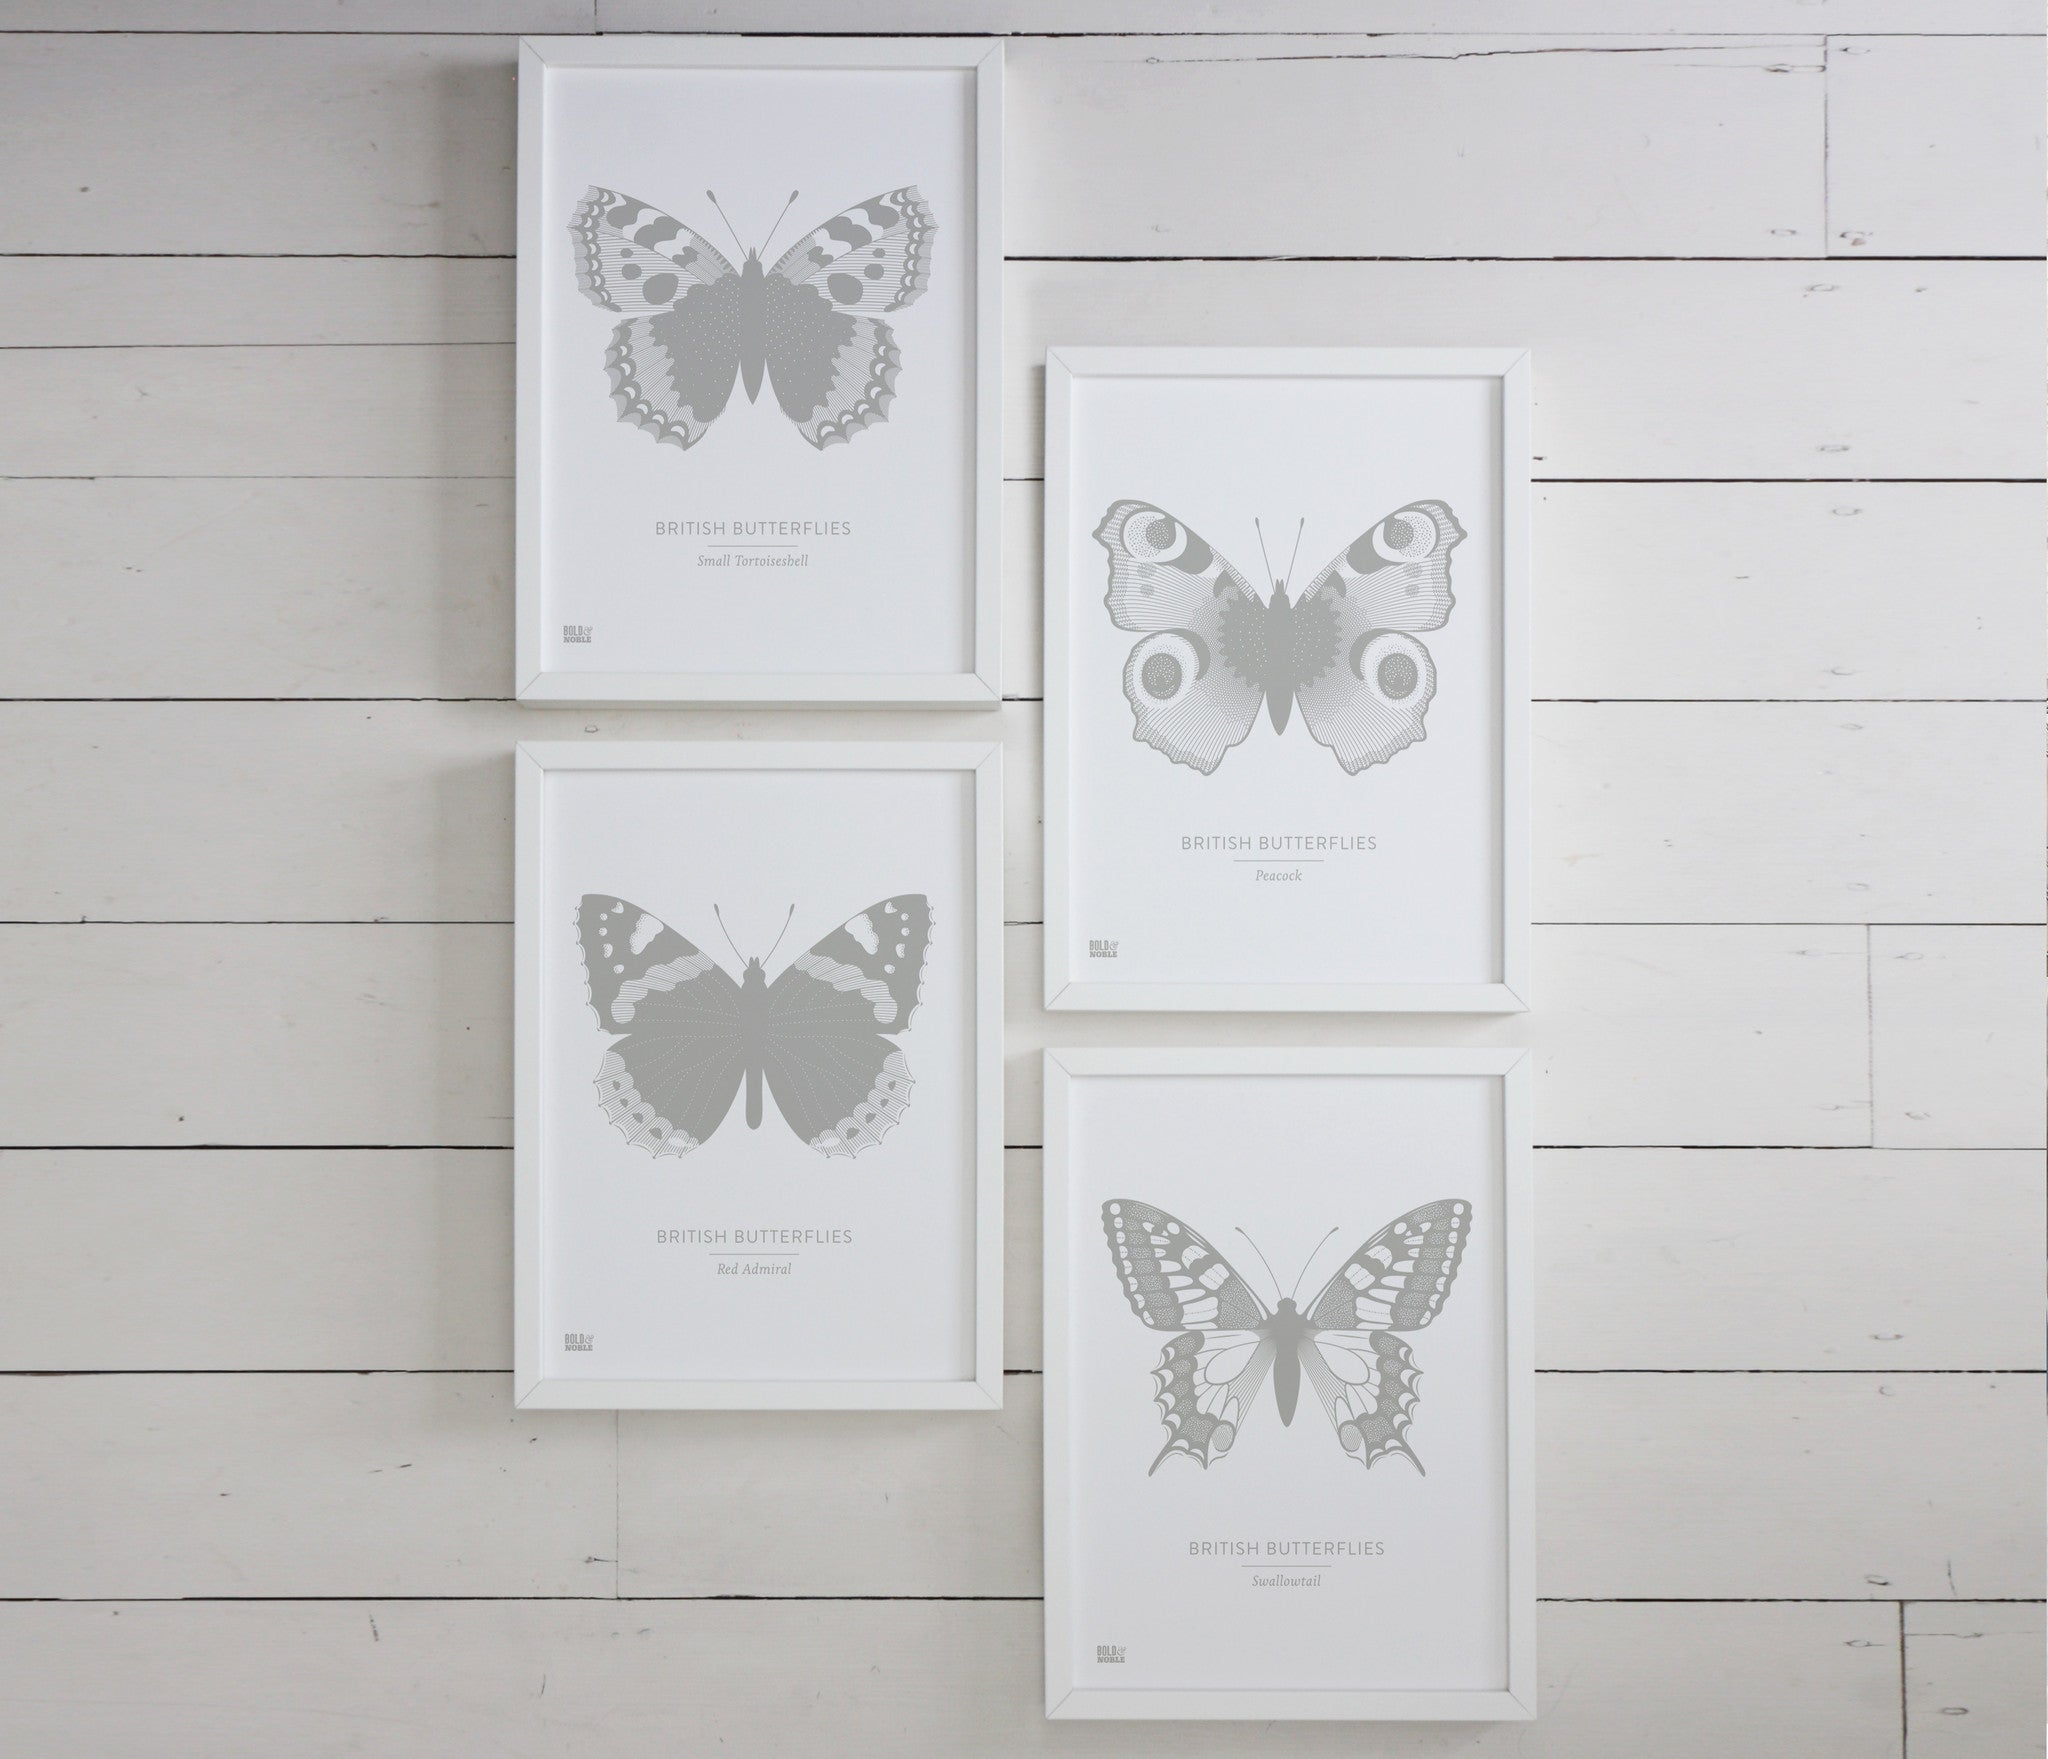 British Butterflies Art Print in Grey, Modern Print Designs for the Home